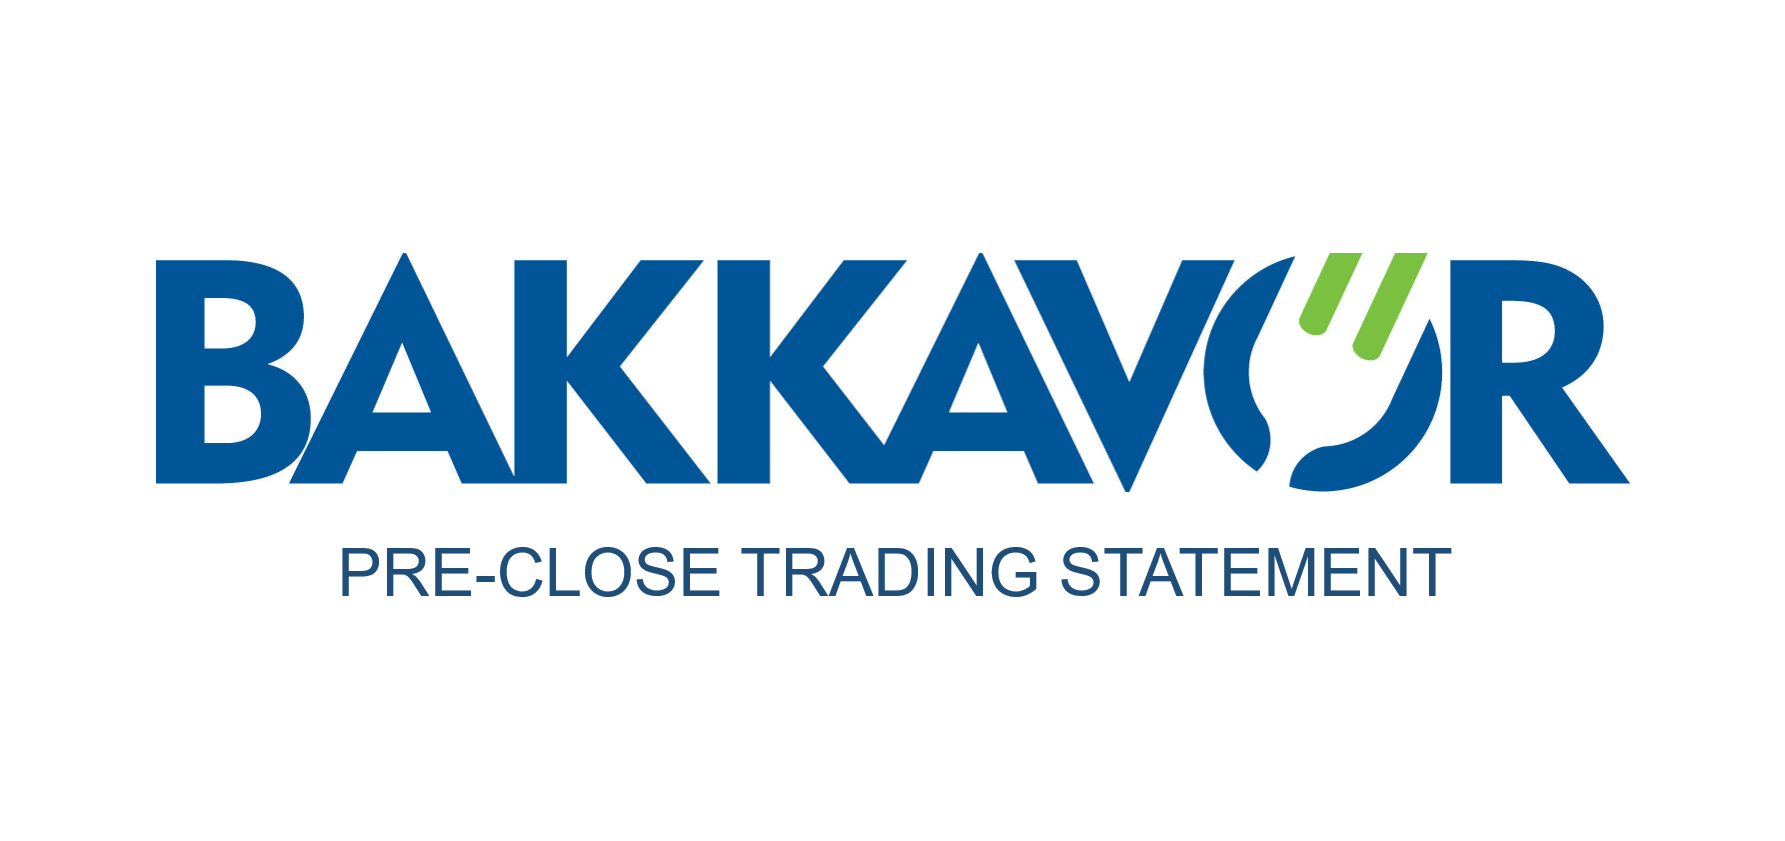 Bakkavor Group Plc